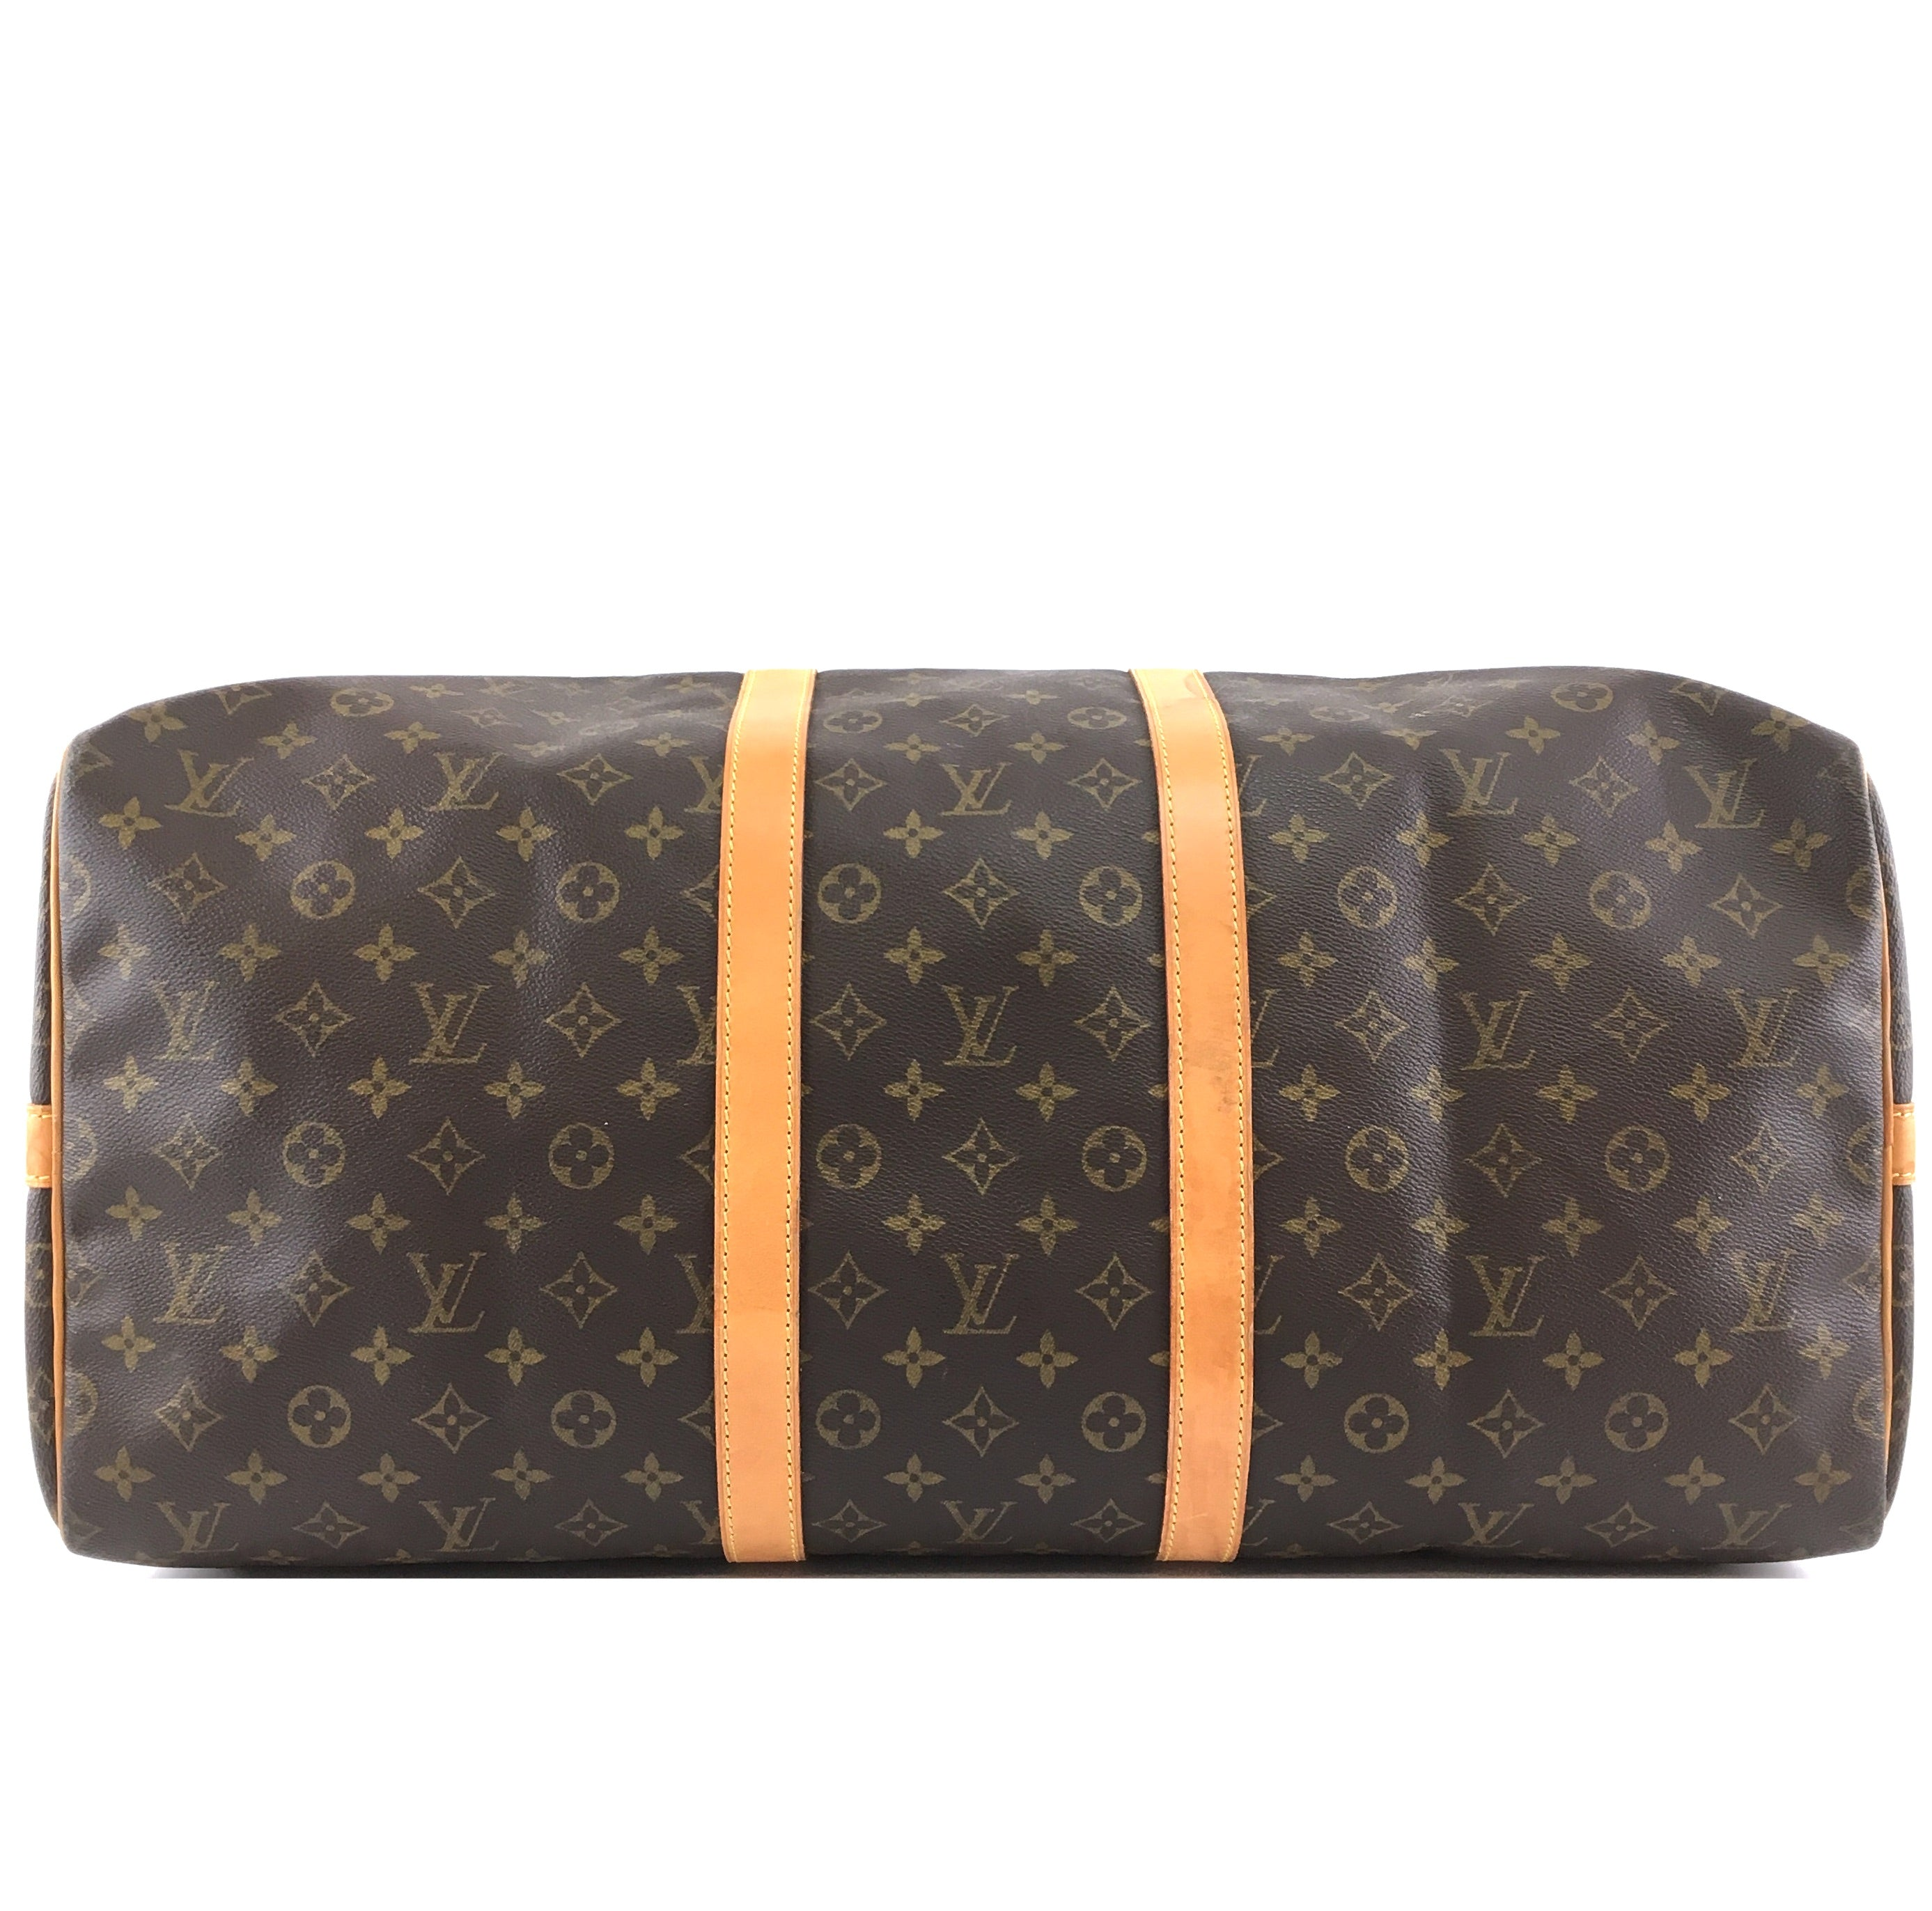 Louis Vuitton Keepall 55 Bandouliere Monogram Canvas